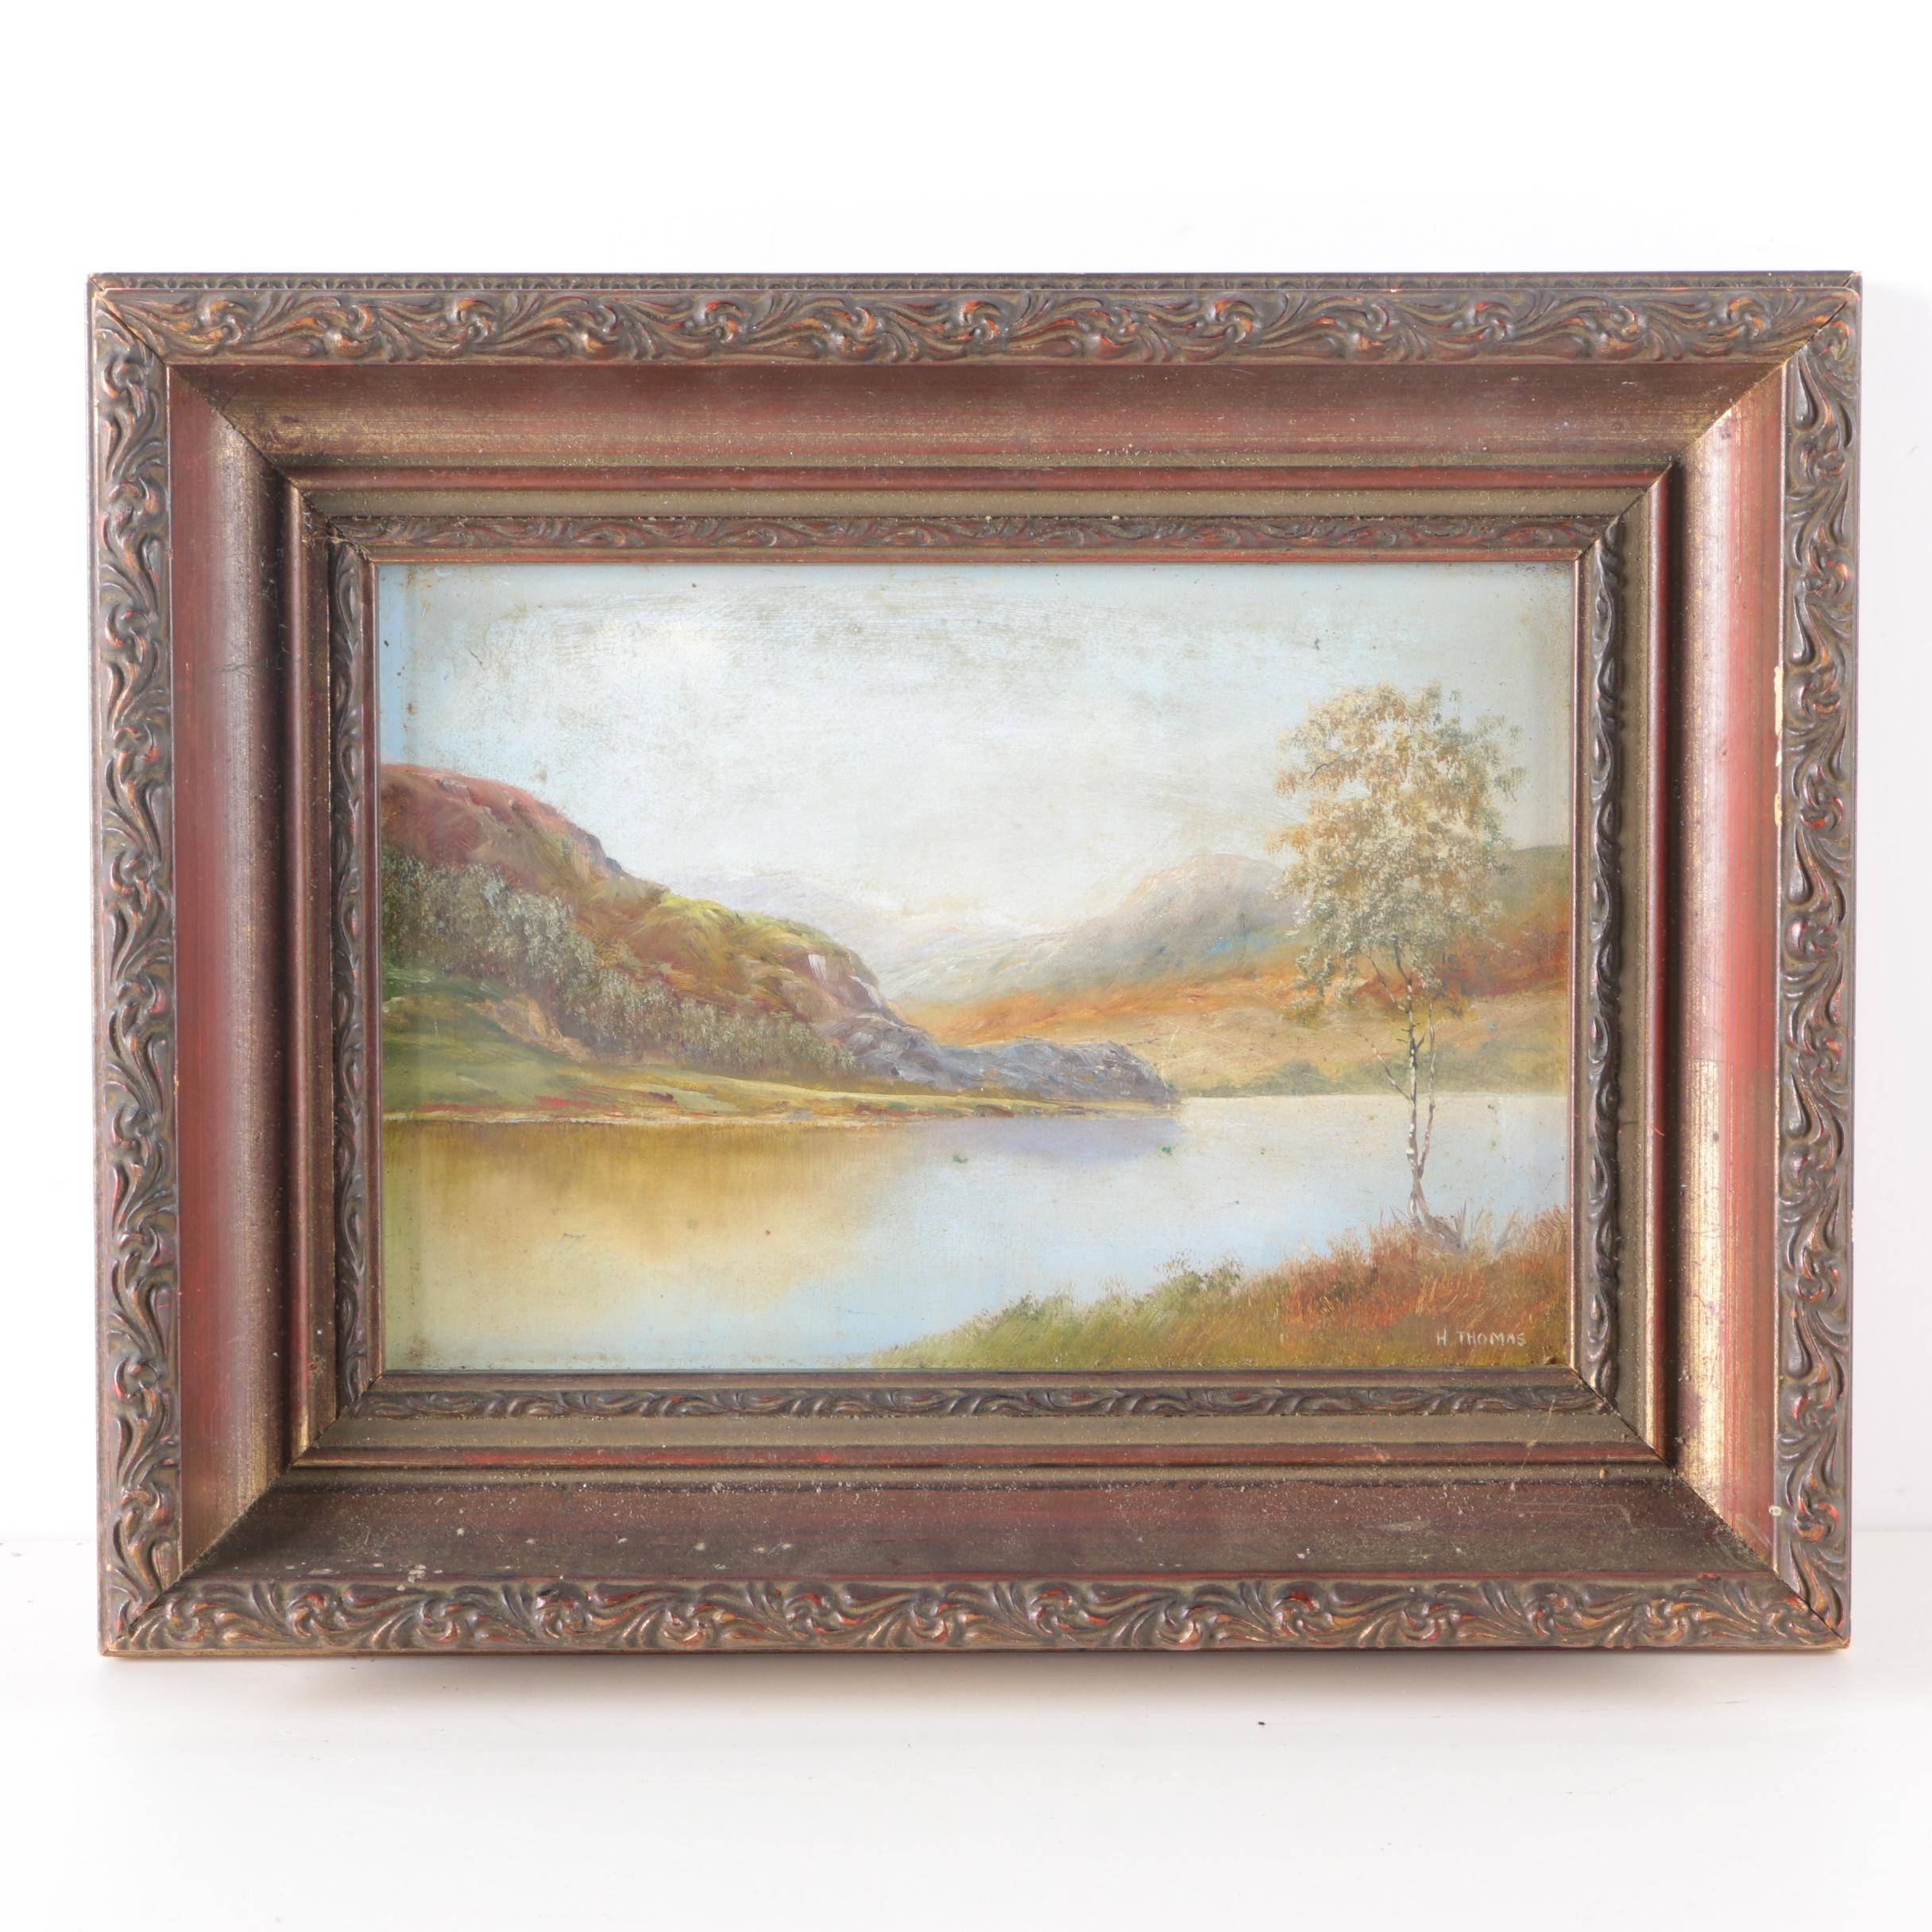 H. Thomas Oil Landscape Painting on Board